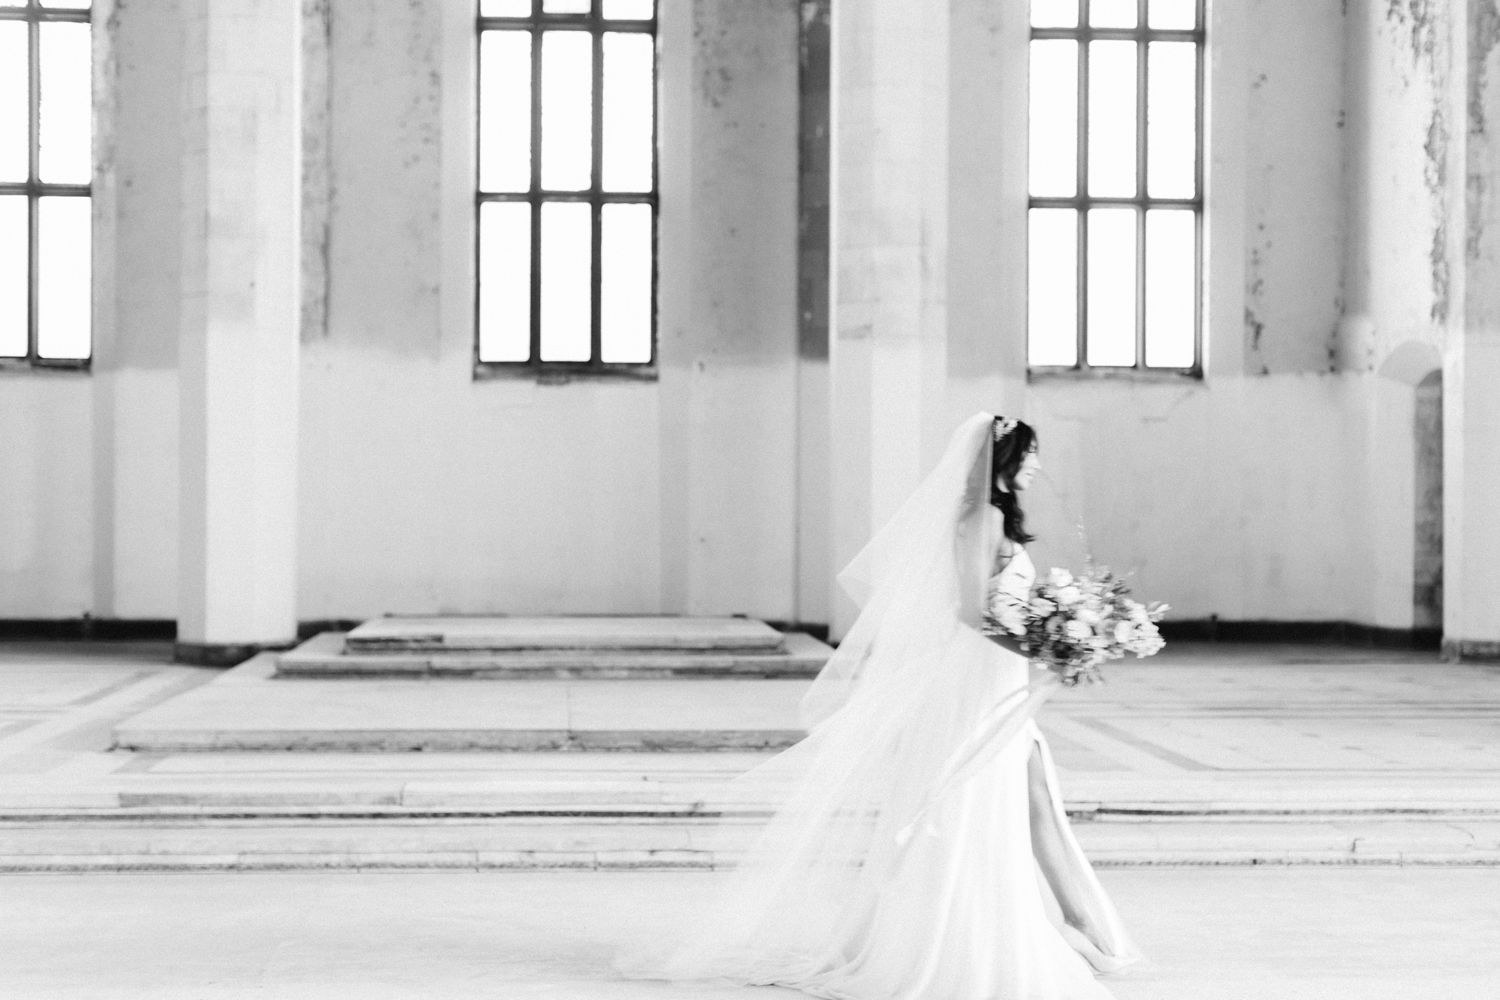 A bride is caught in movement while walking through the abandoned cathedral location of her destination wedding